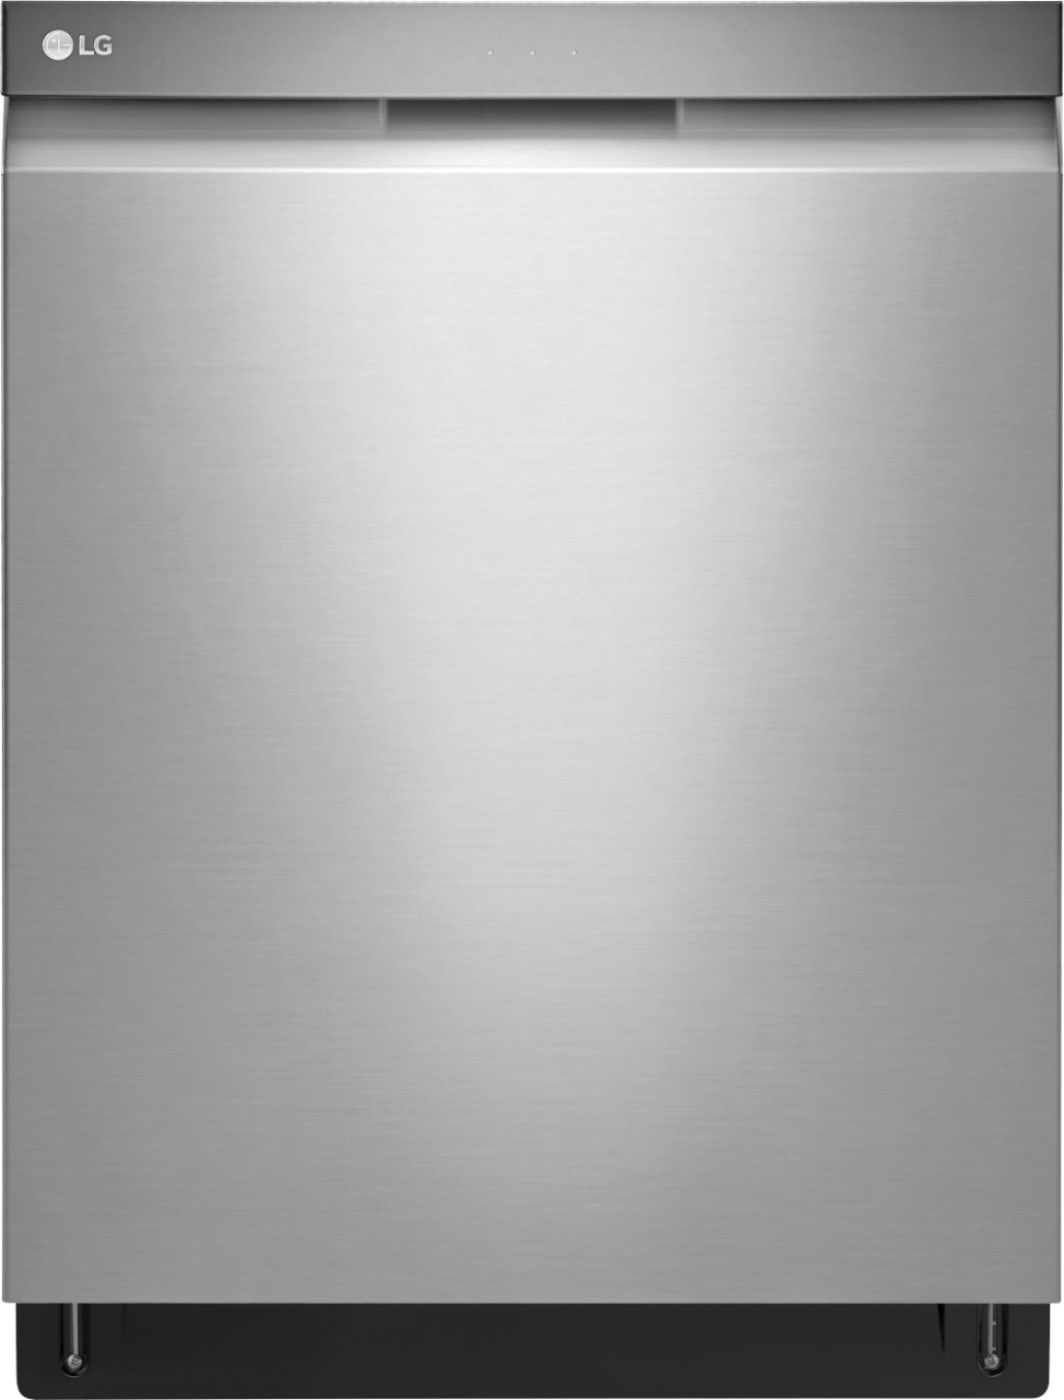 hight resolution of lg 24 top control smart wi fi enabled dishwasher with quadwash and stainless steel tub stainless steel ldp6797st best buy